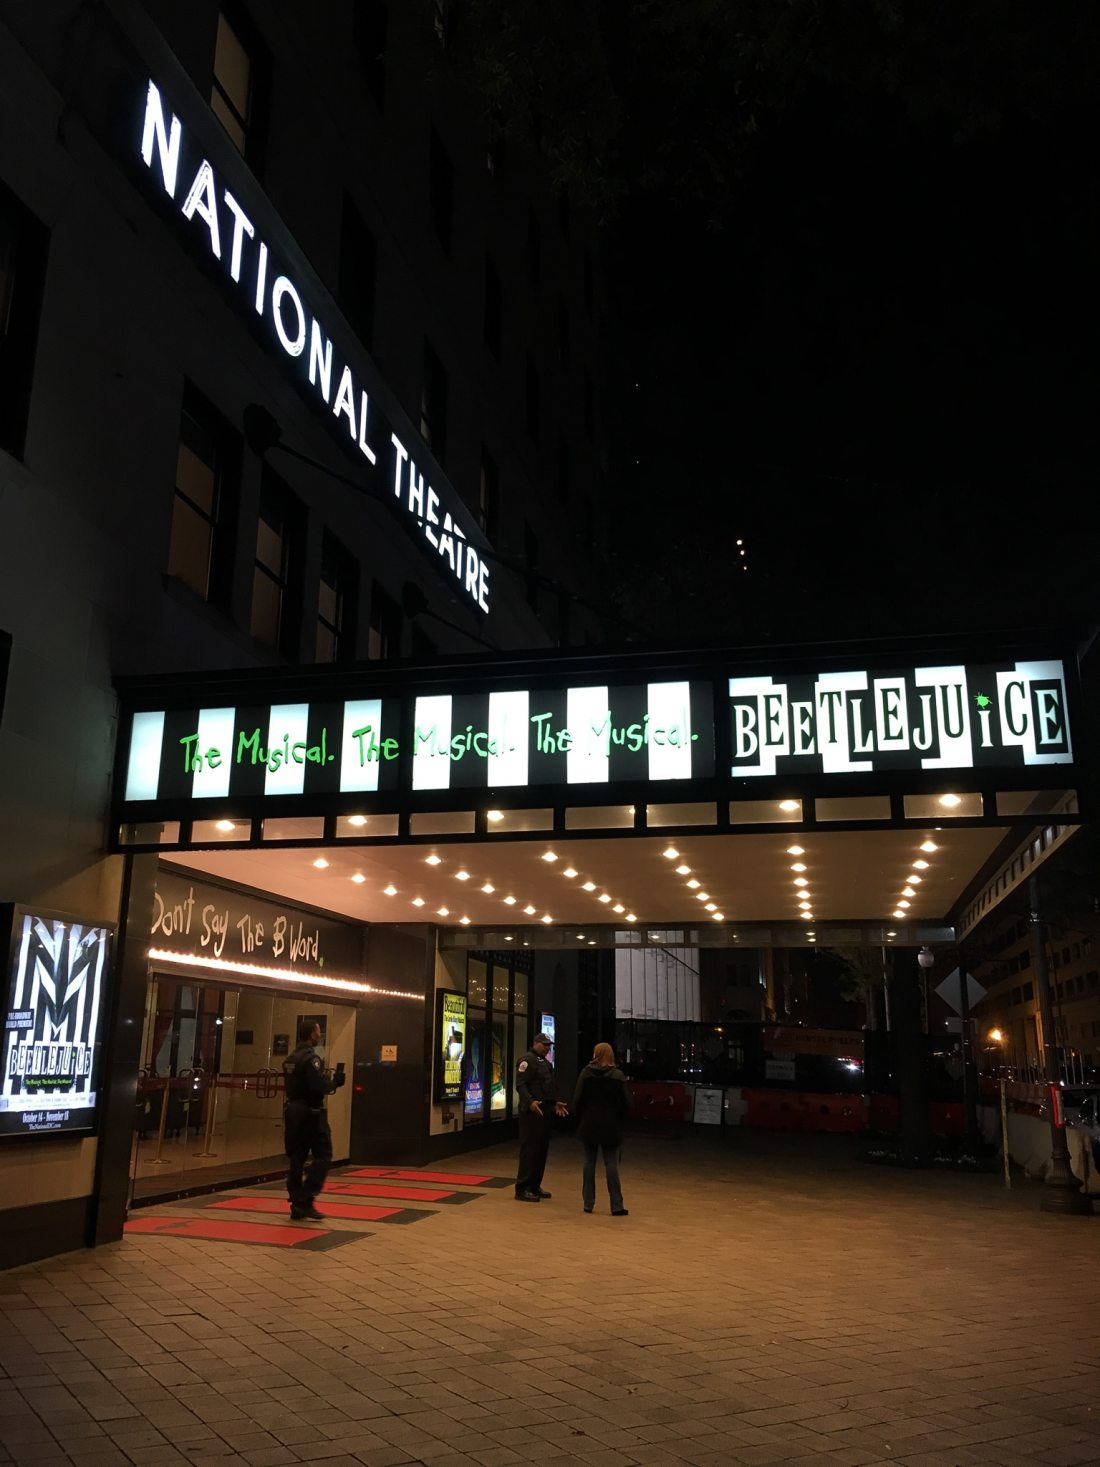 Beetlejuice The Musical National Theater DC. Beetlejuice The Musical will be showing at the National Theater in DC Now till Nov 18, 2018. Follow this Raunchy humorous musical as you explore the world of Beetlejuice even deeper than the previous movie showed.